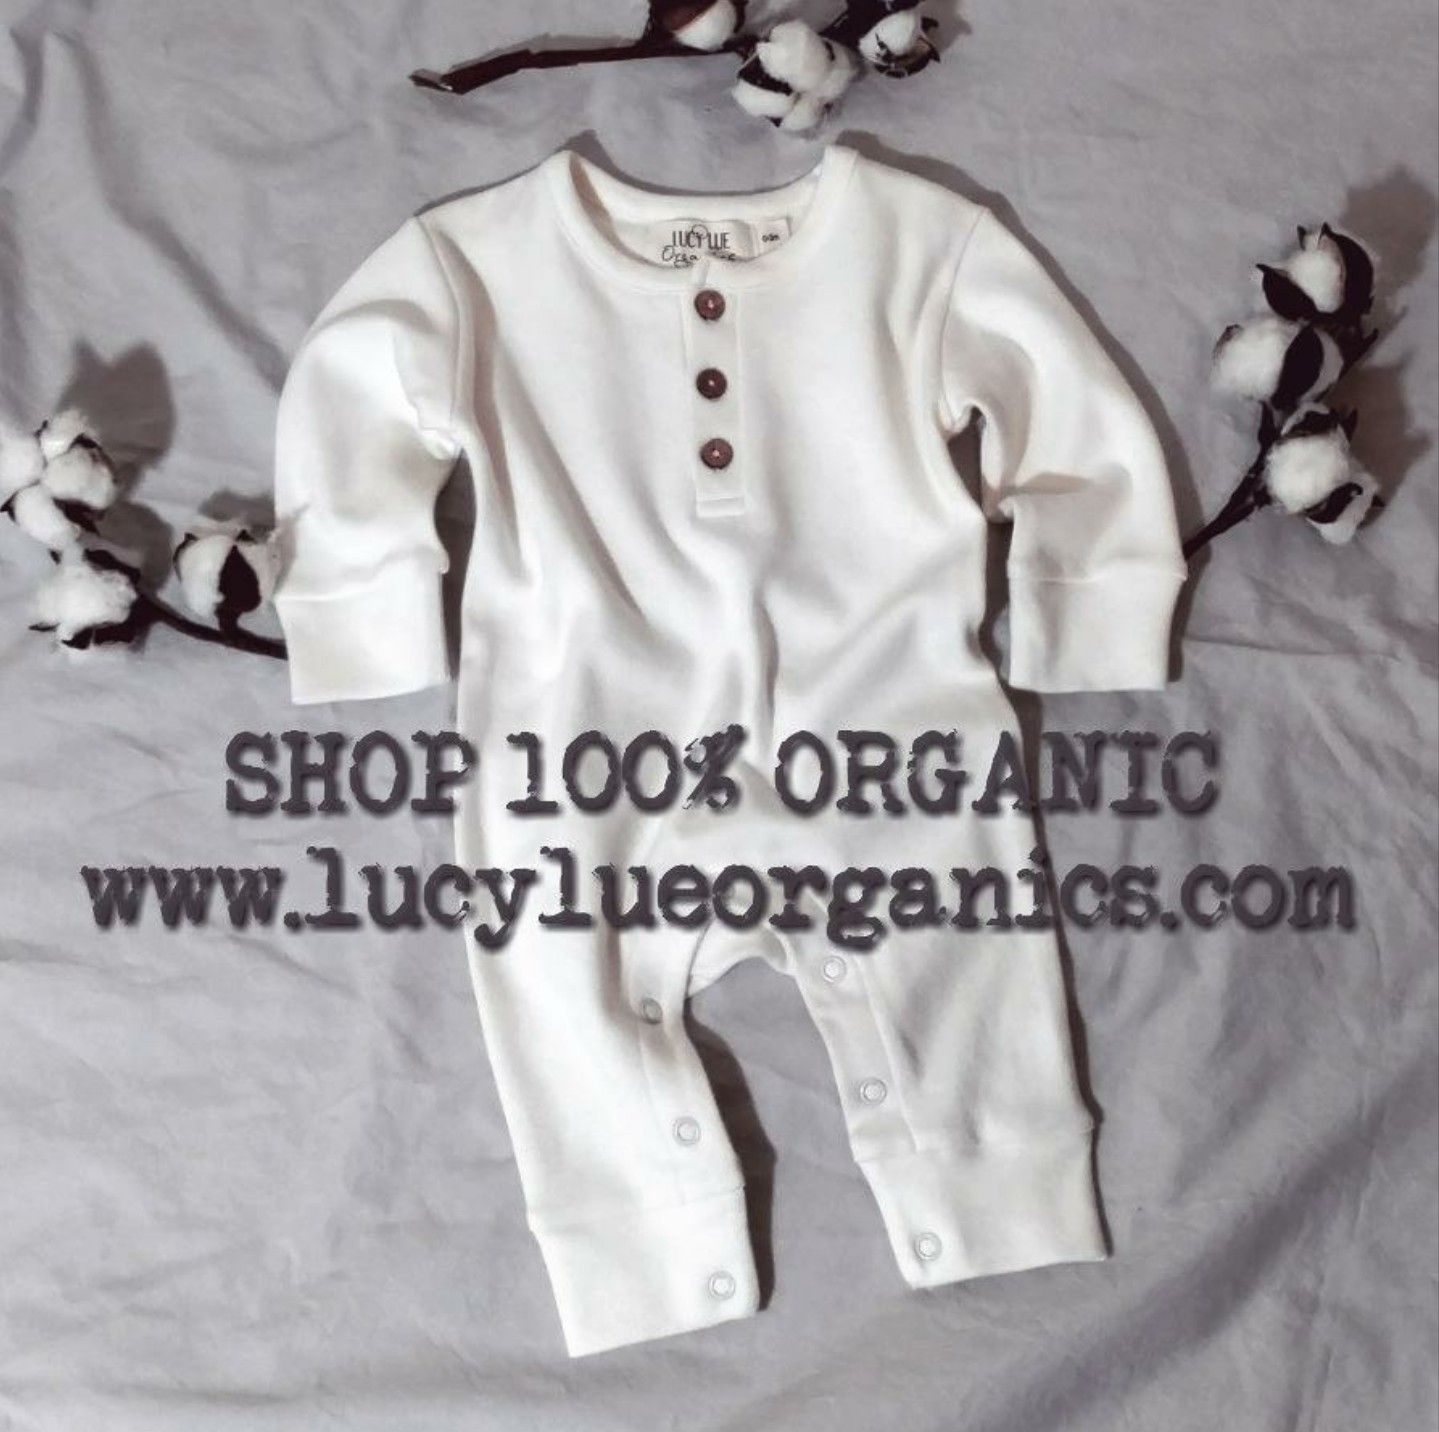 Shop Organic Cotton baby styles from LUCY LUE ORGANICS Baby